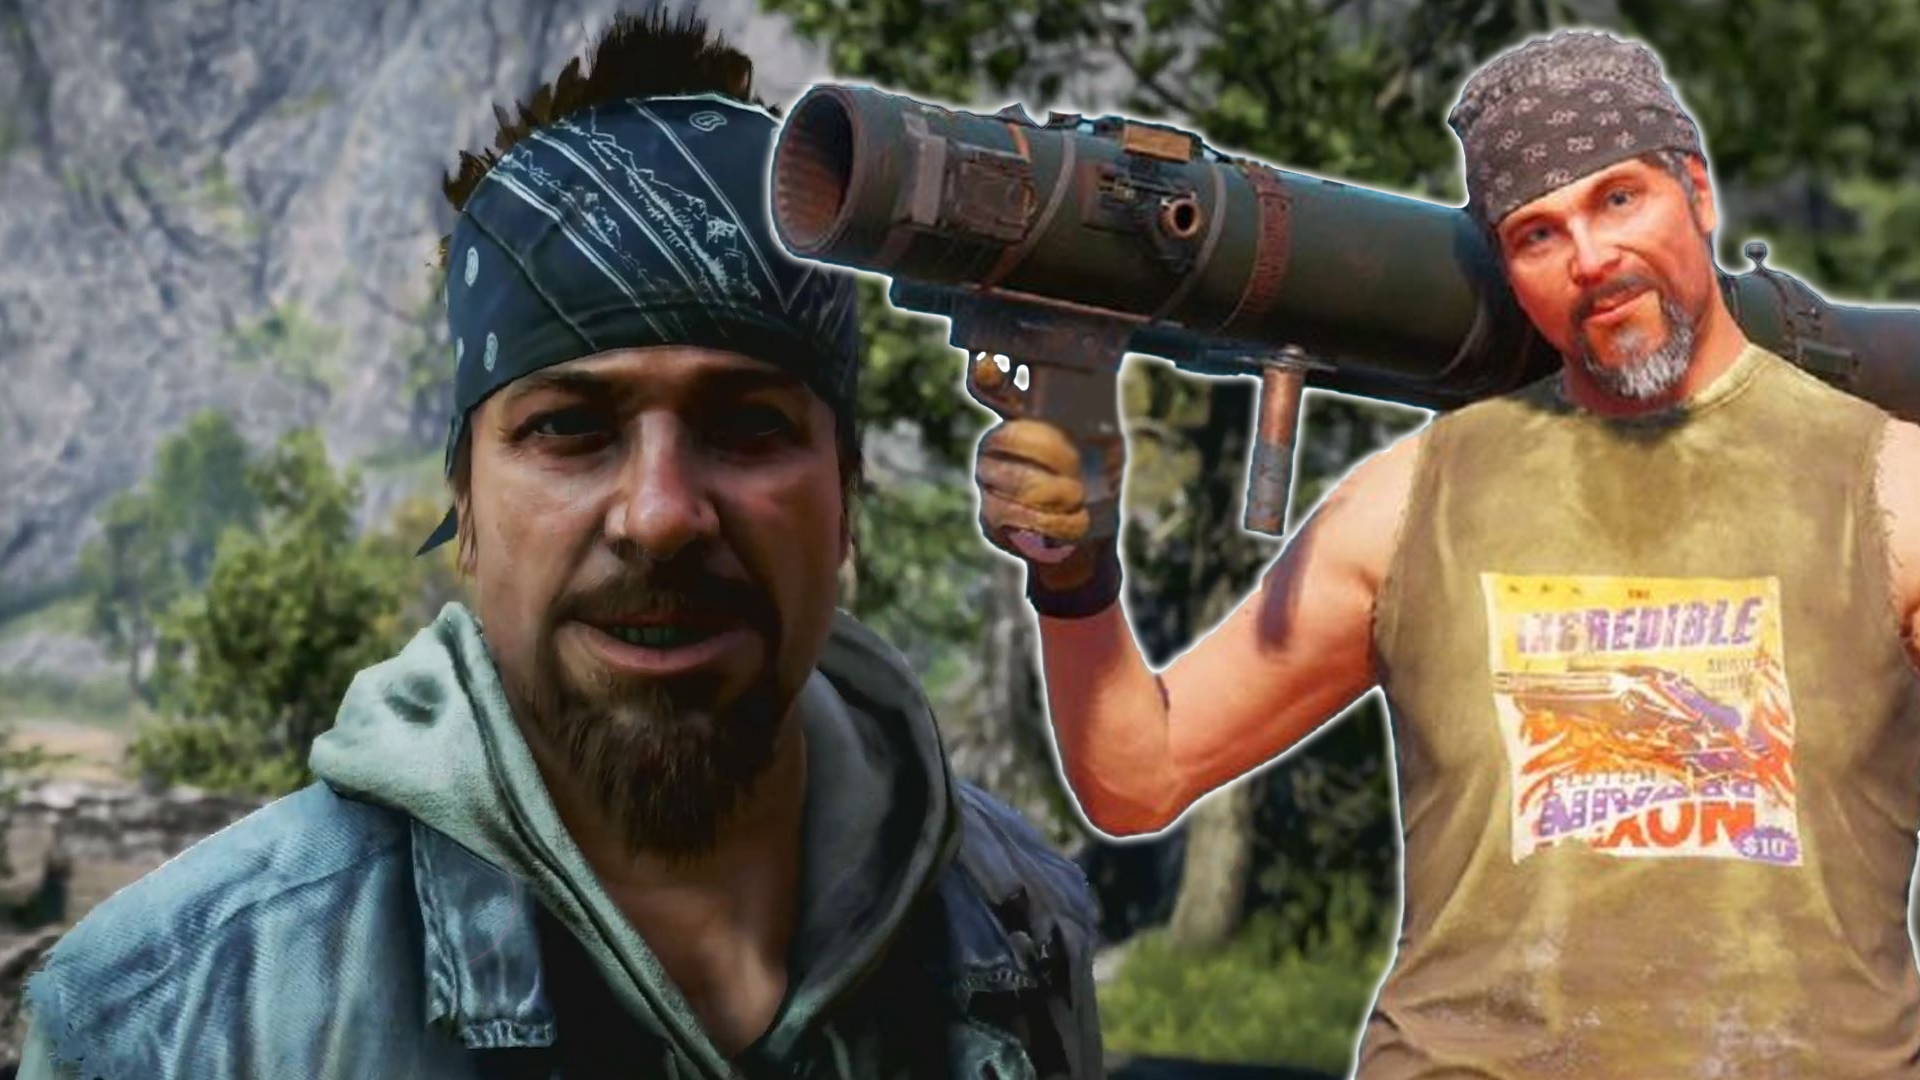 Hurk Has Become The Mascot Of Far Cry